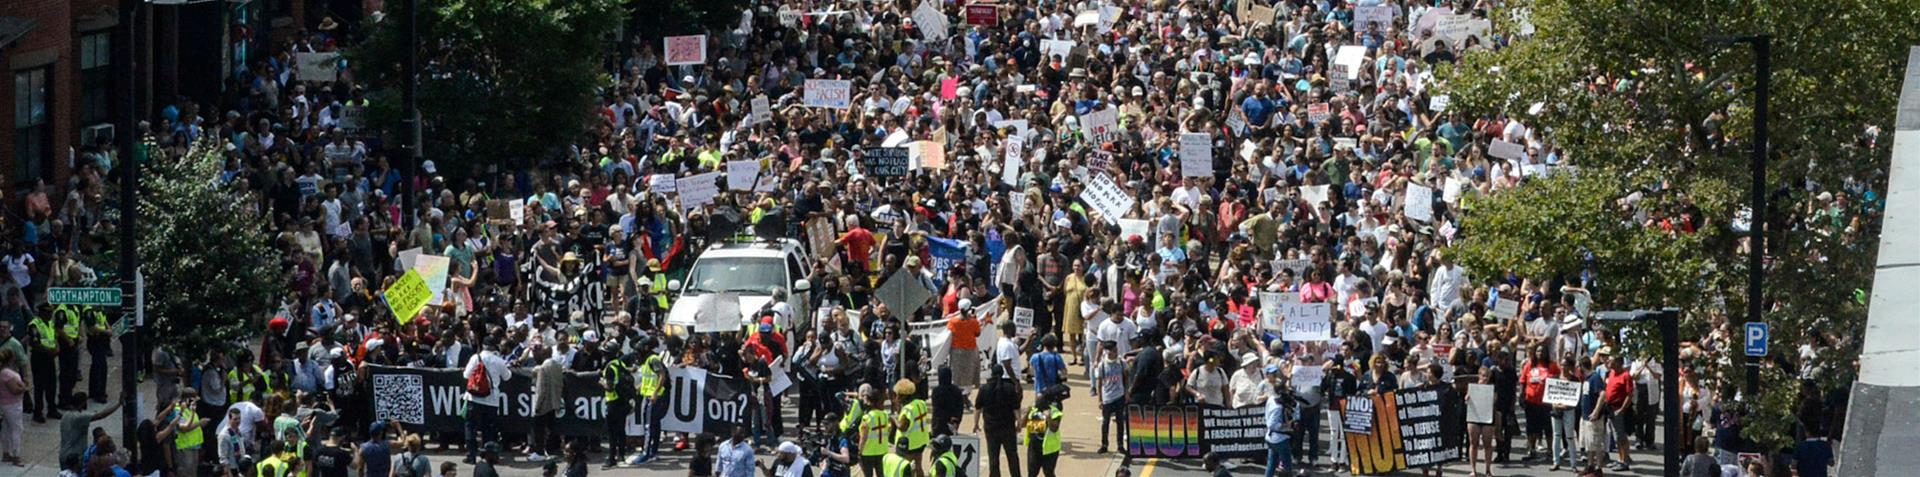 More than 10,000 counterprotesters took to the streets of Boston to decry racism [Scott Eisen/Getty Images/AFP]